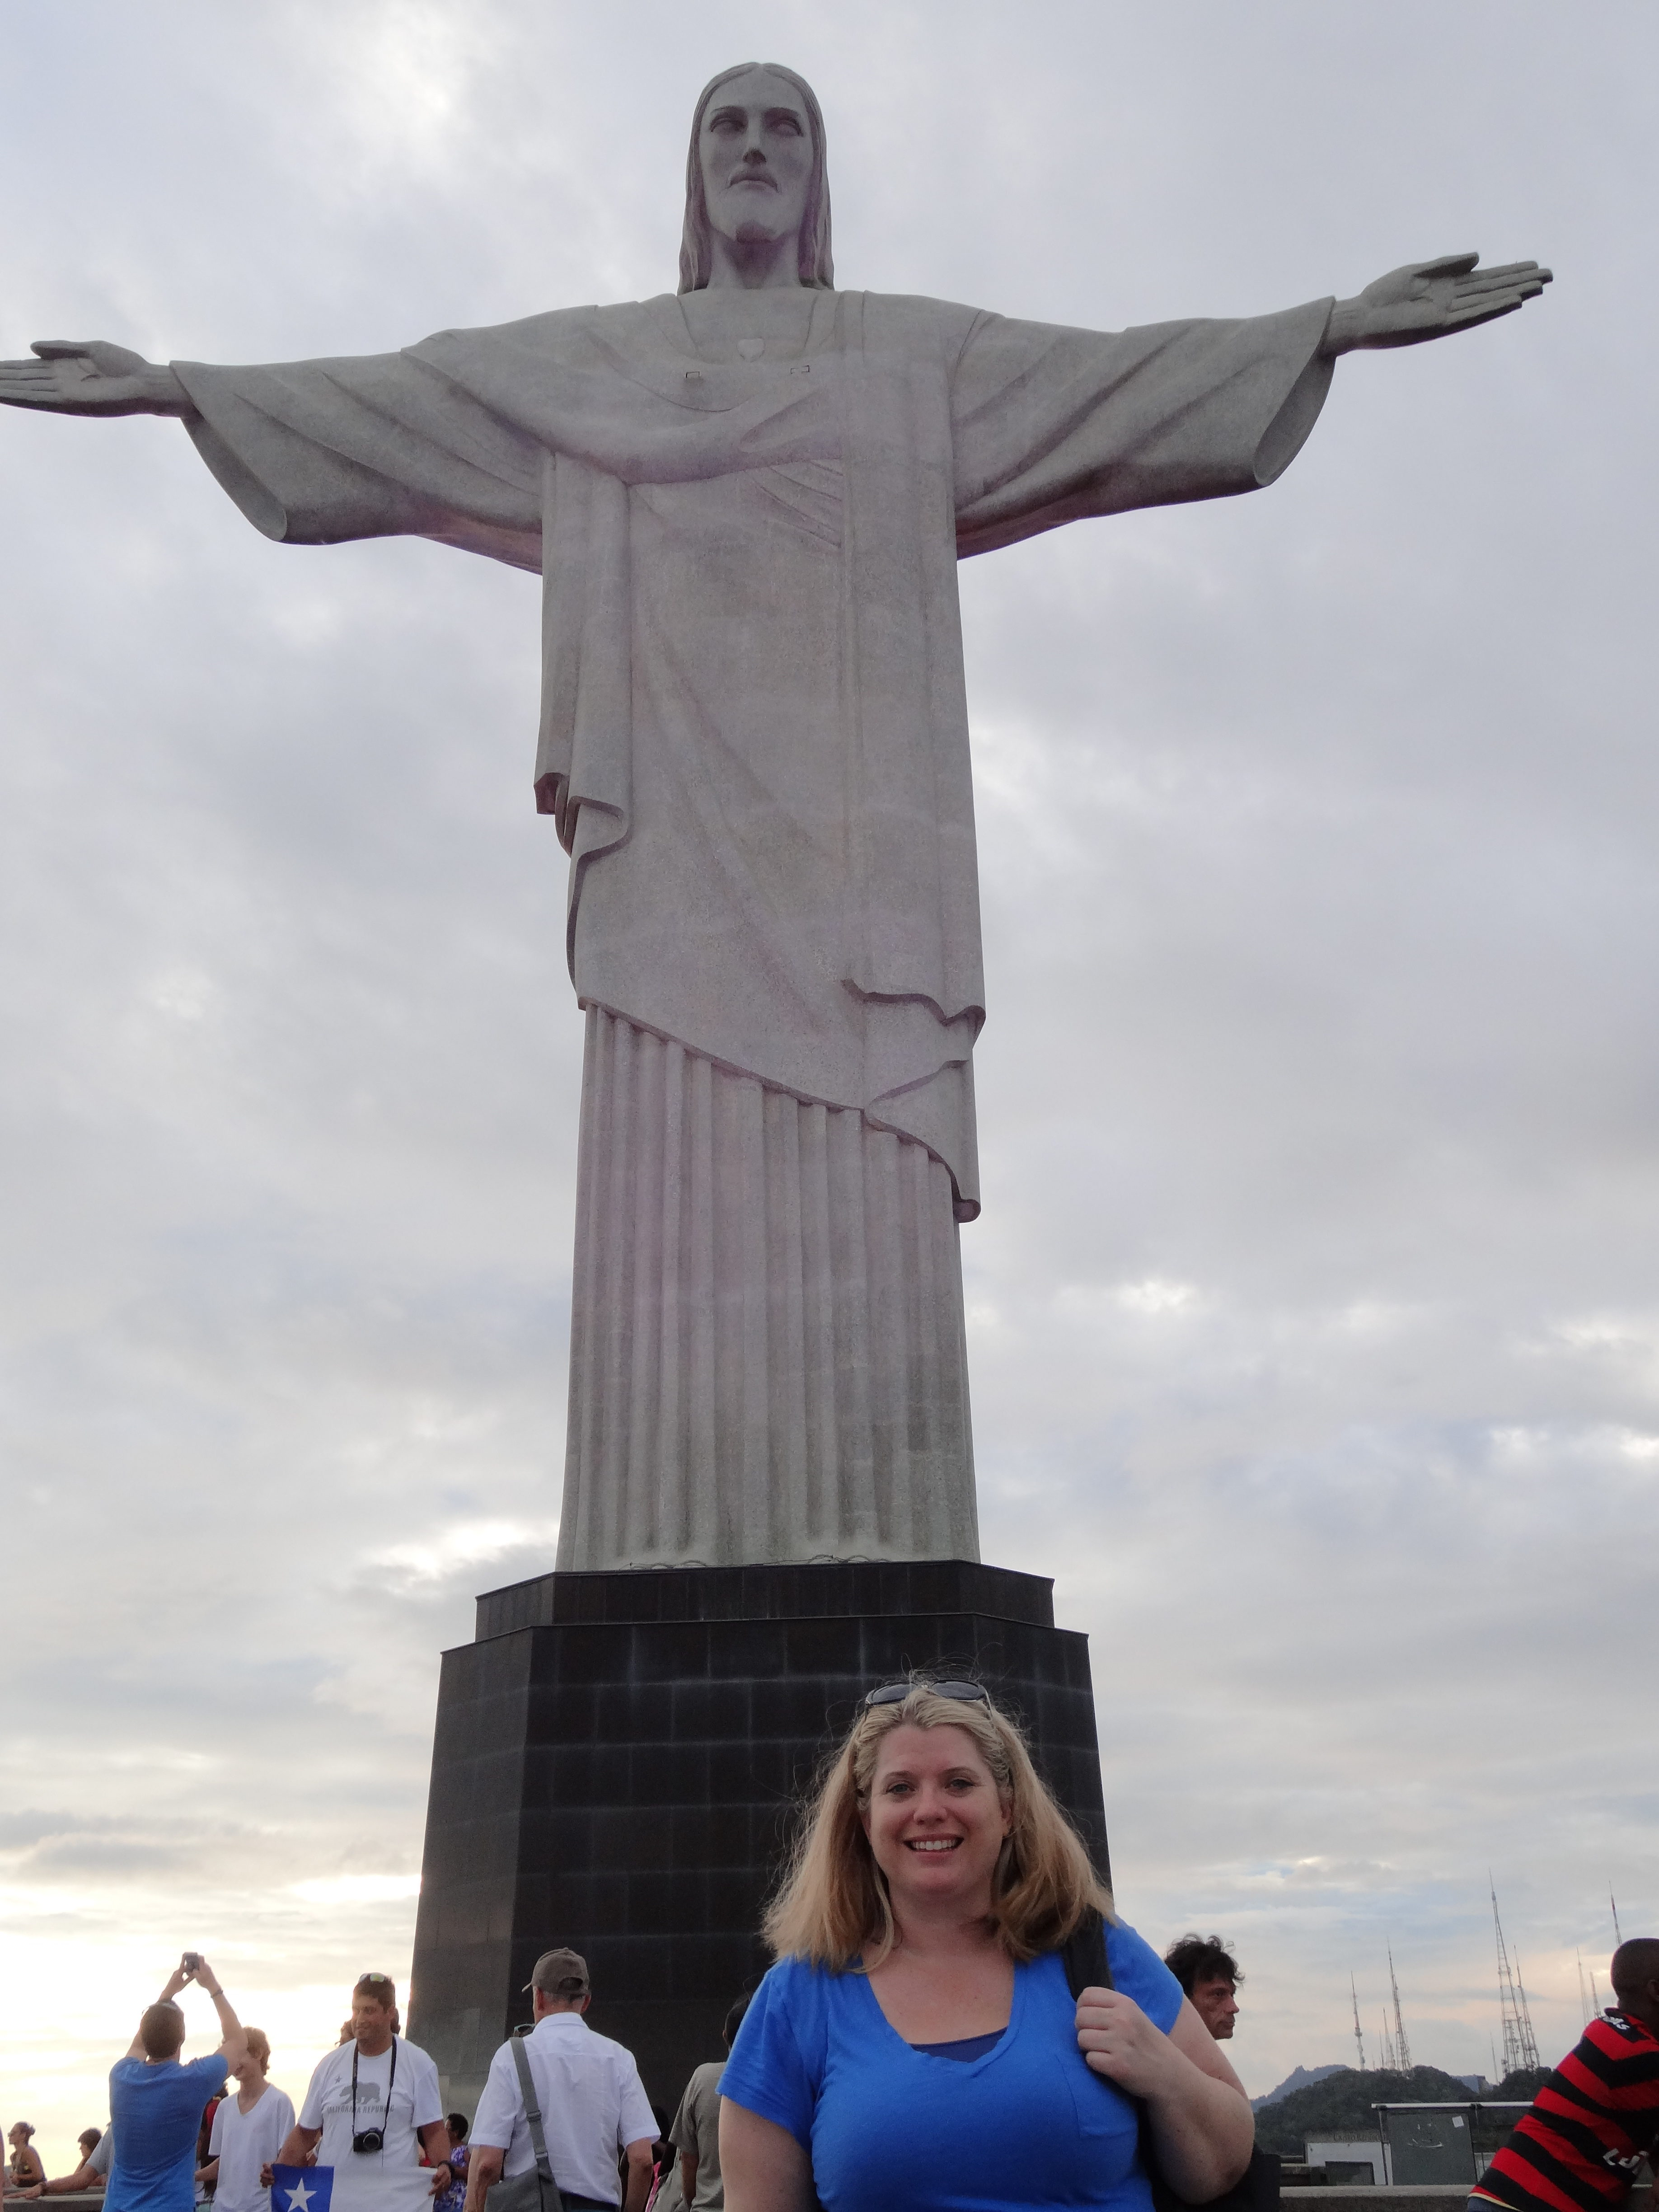 Me at the Christ Redeemer